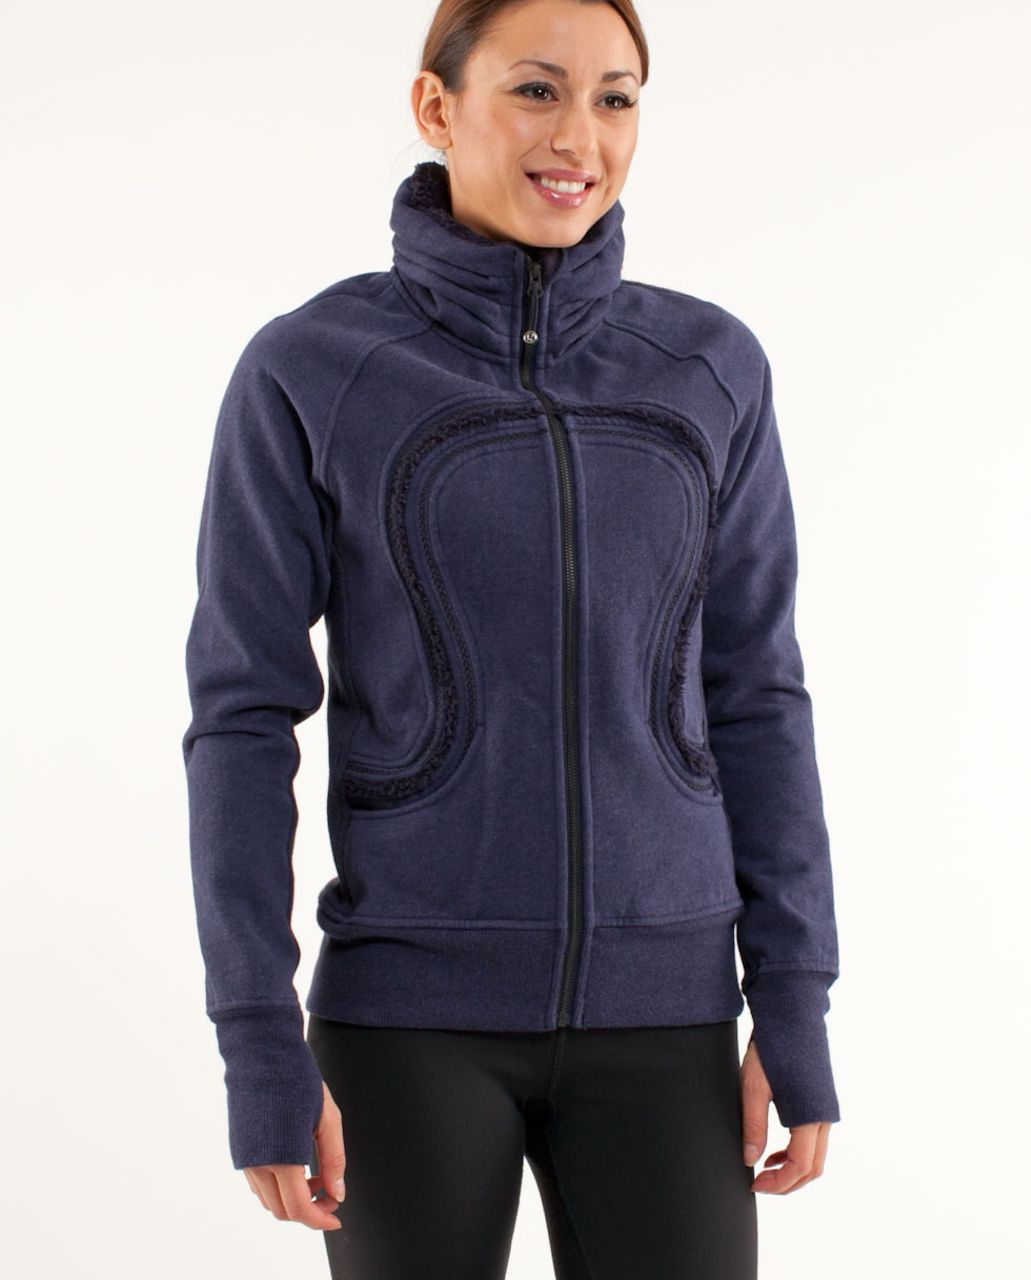 Lululemon Cuddle Up Jacket - Heathered Black Swan